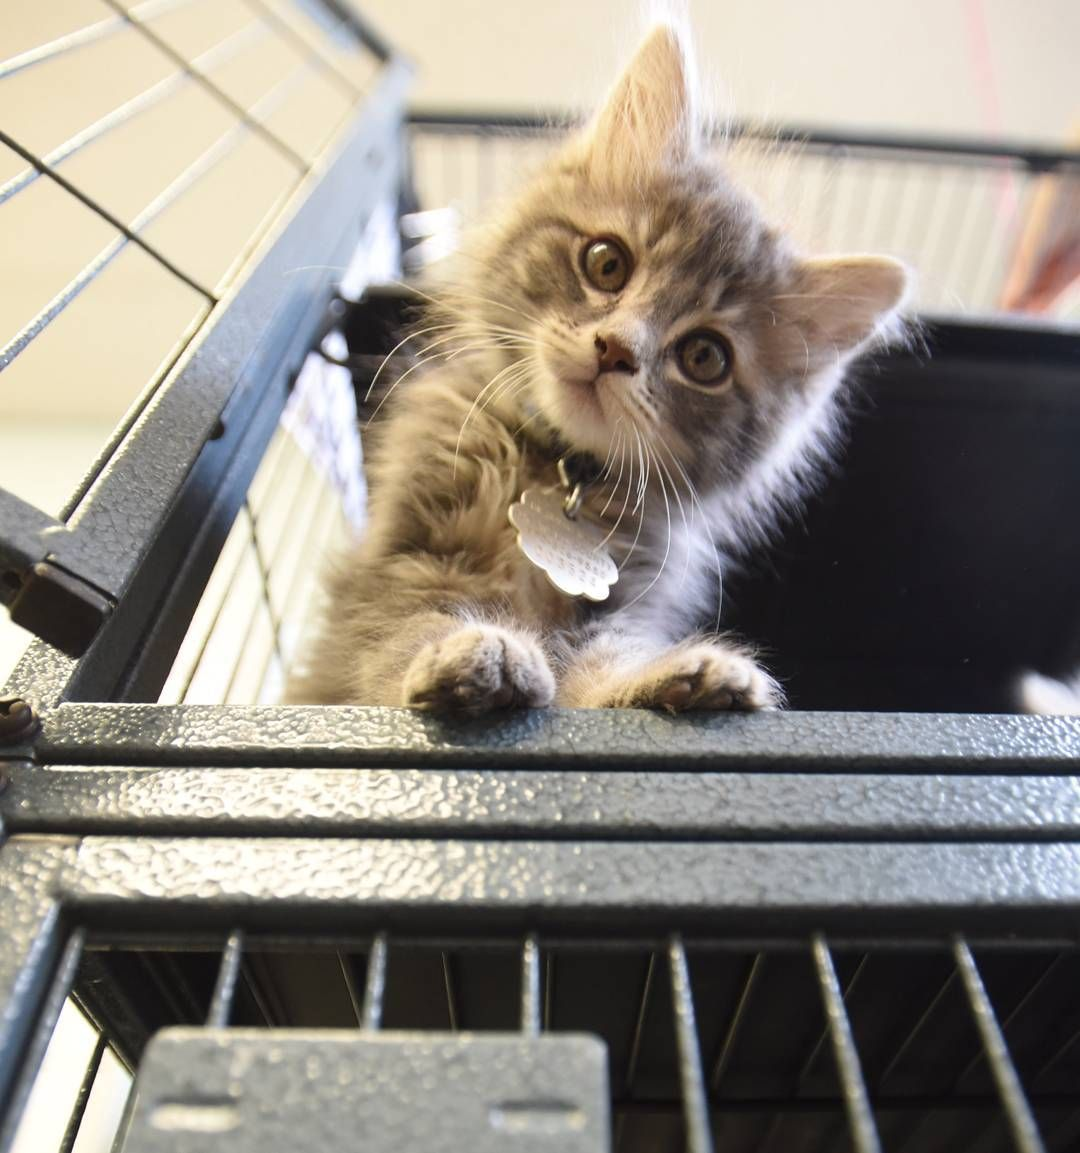 A kitten curiously investigates the camera on Tuesday at the Humane Society of Weld County ...